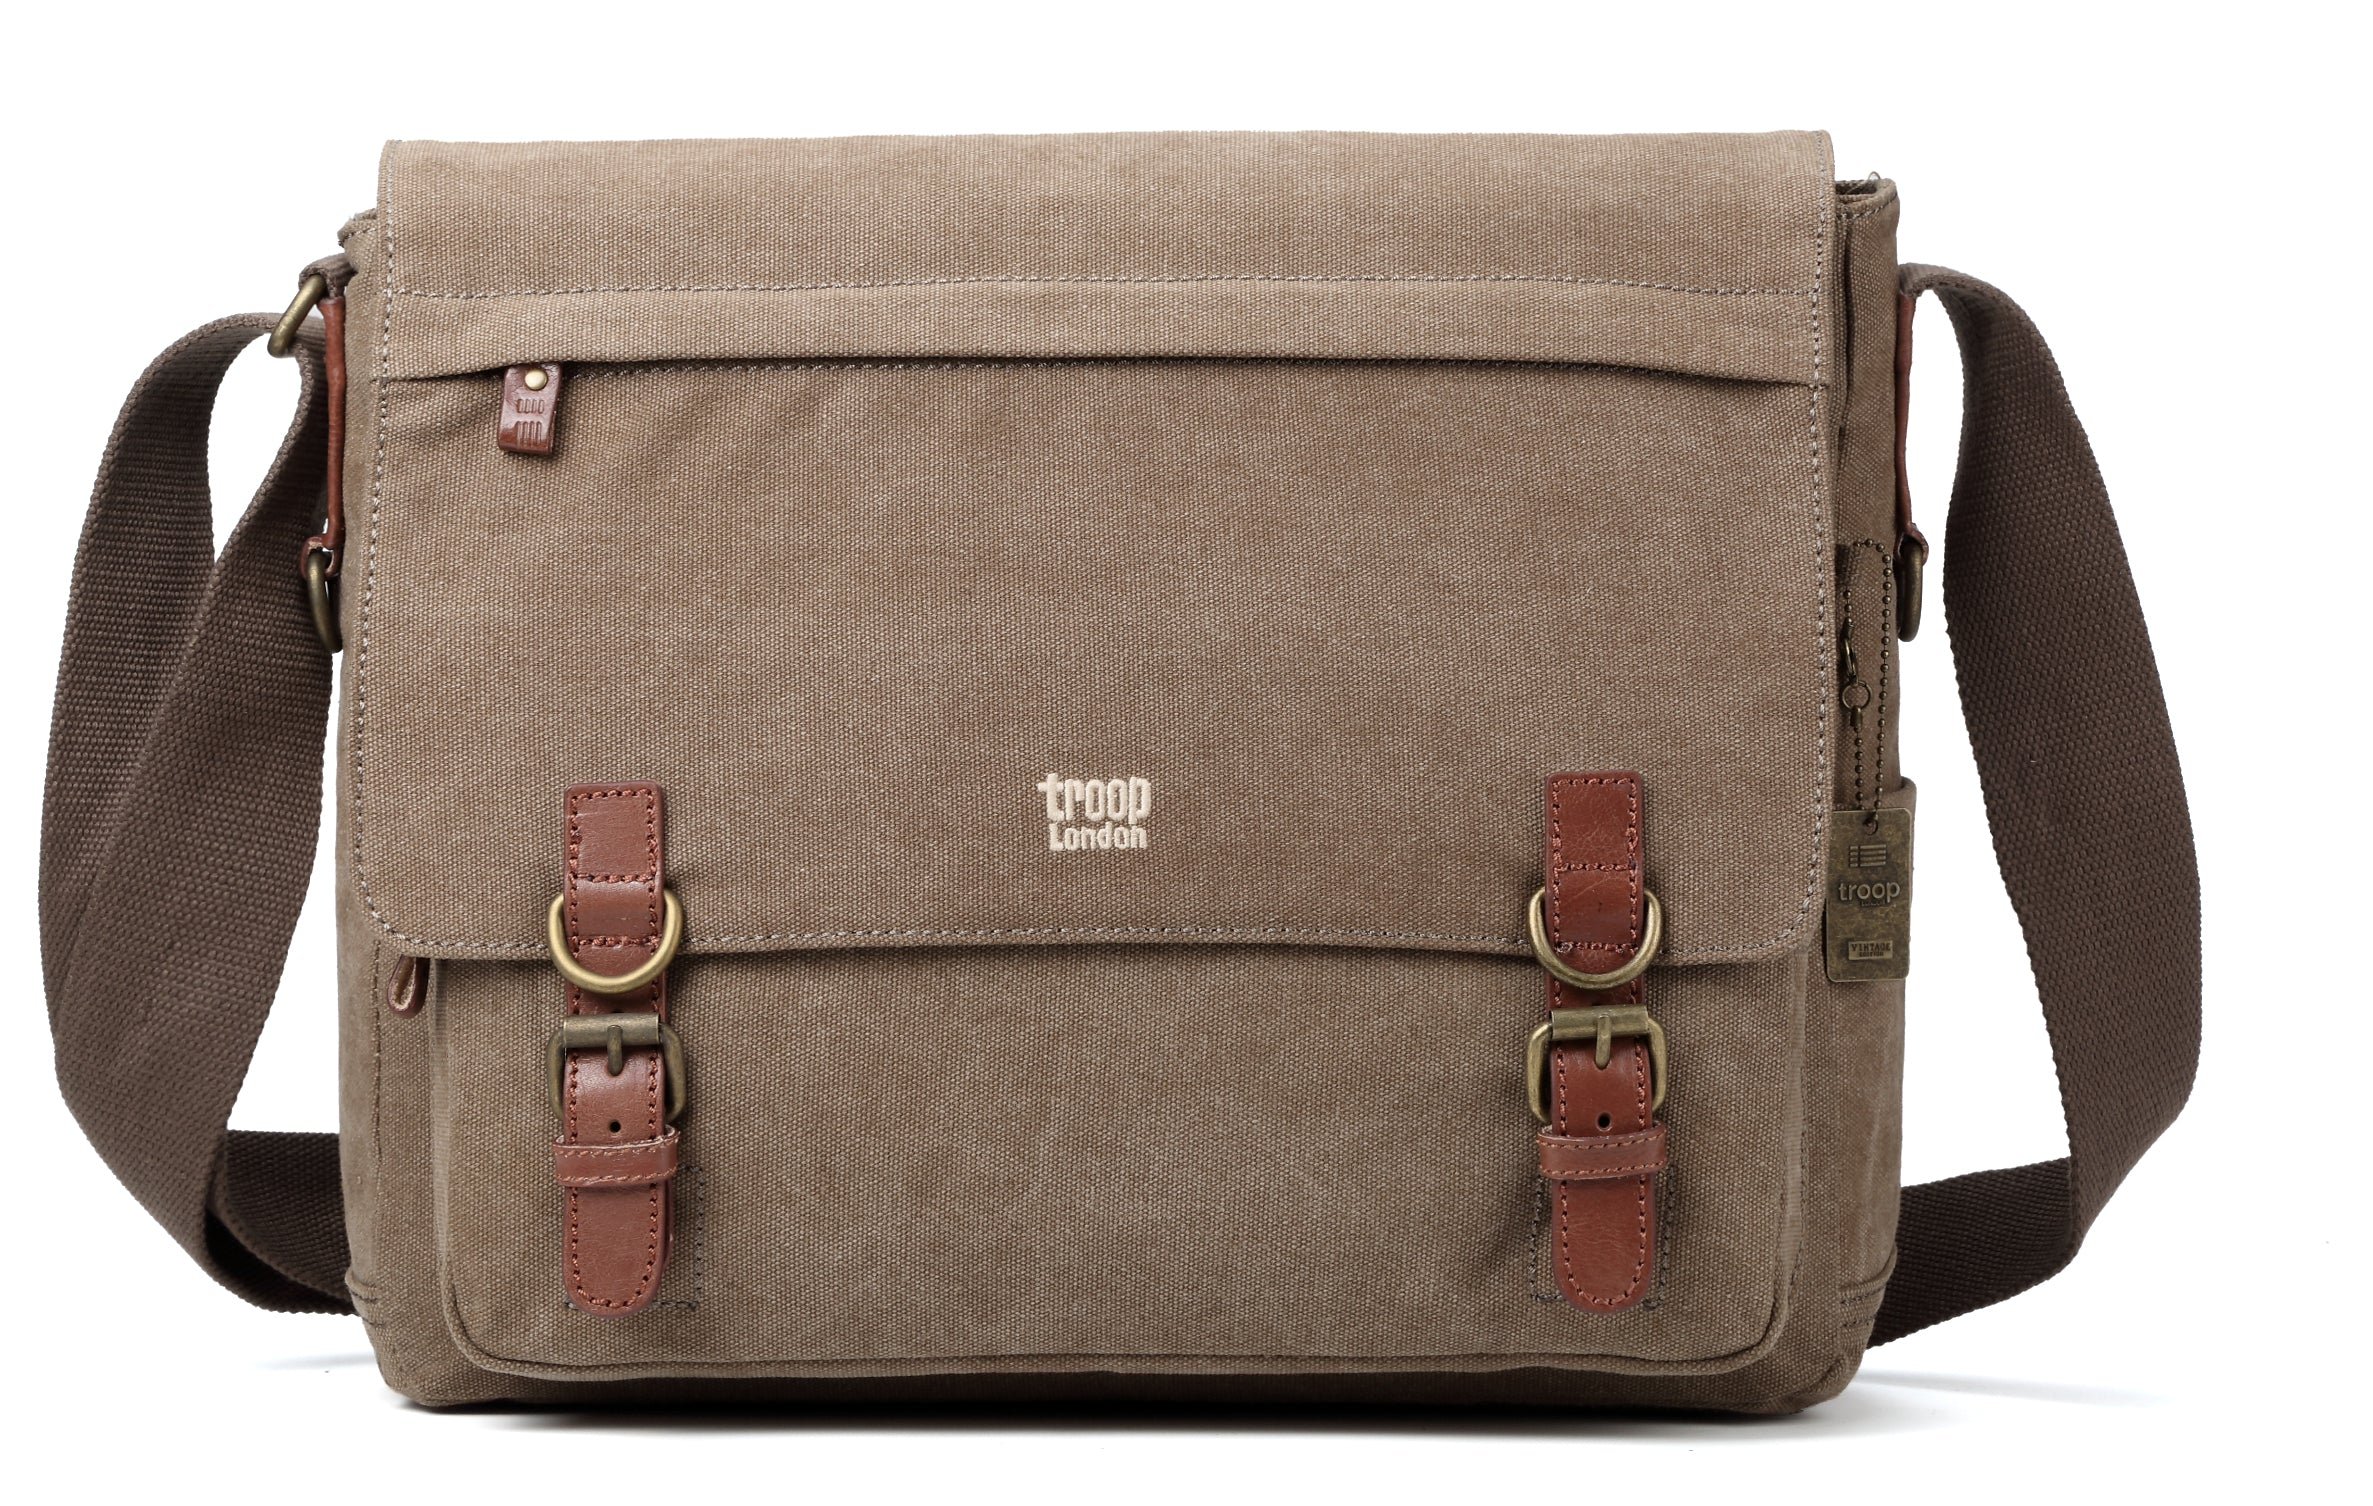 693b60246df3 Troop London Canvas Messenger Bag Fits Up To 17 Inch Laptop Size Large  TRP0207 Brown